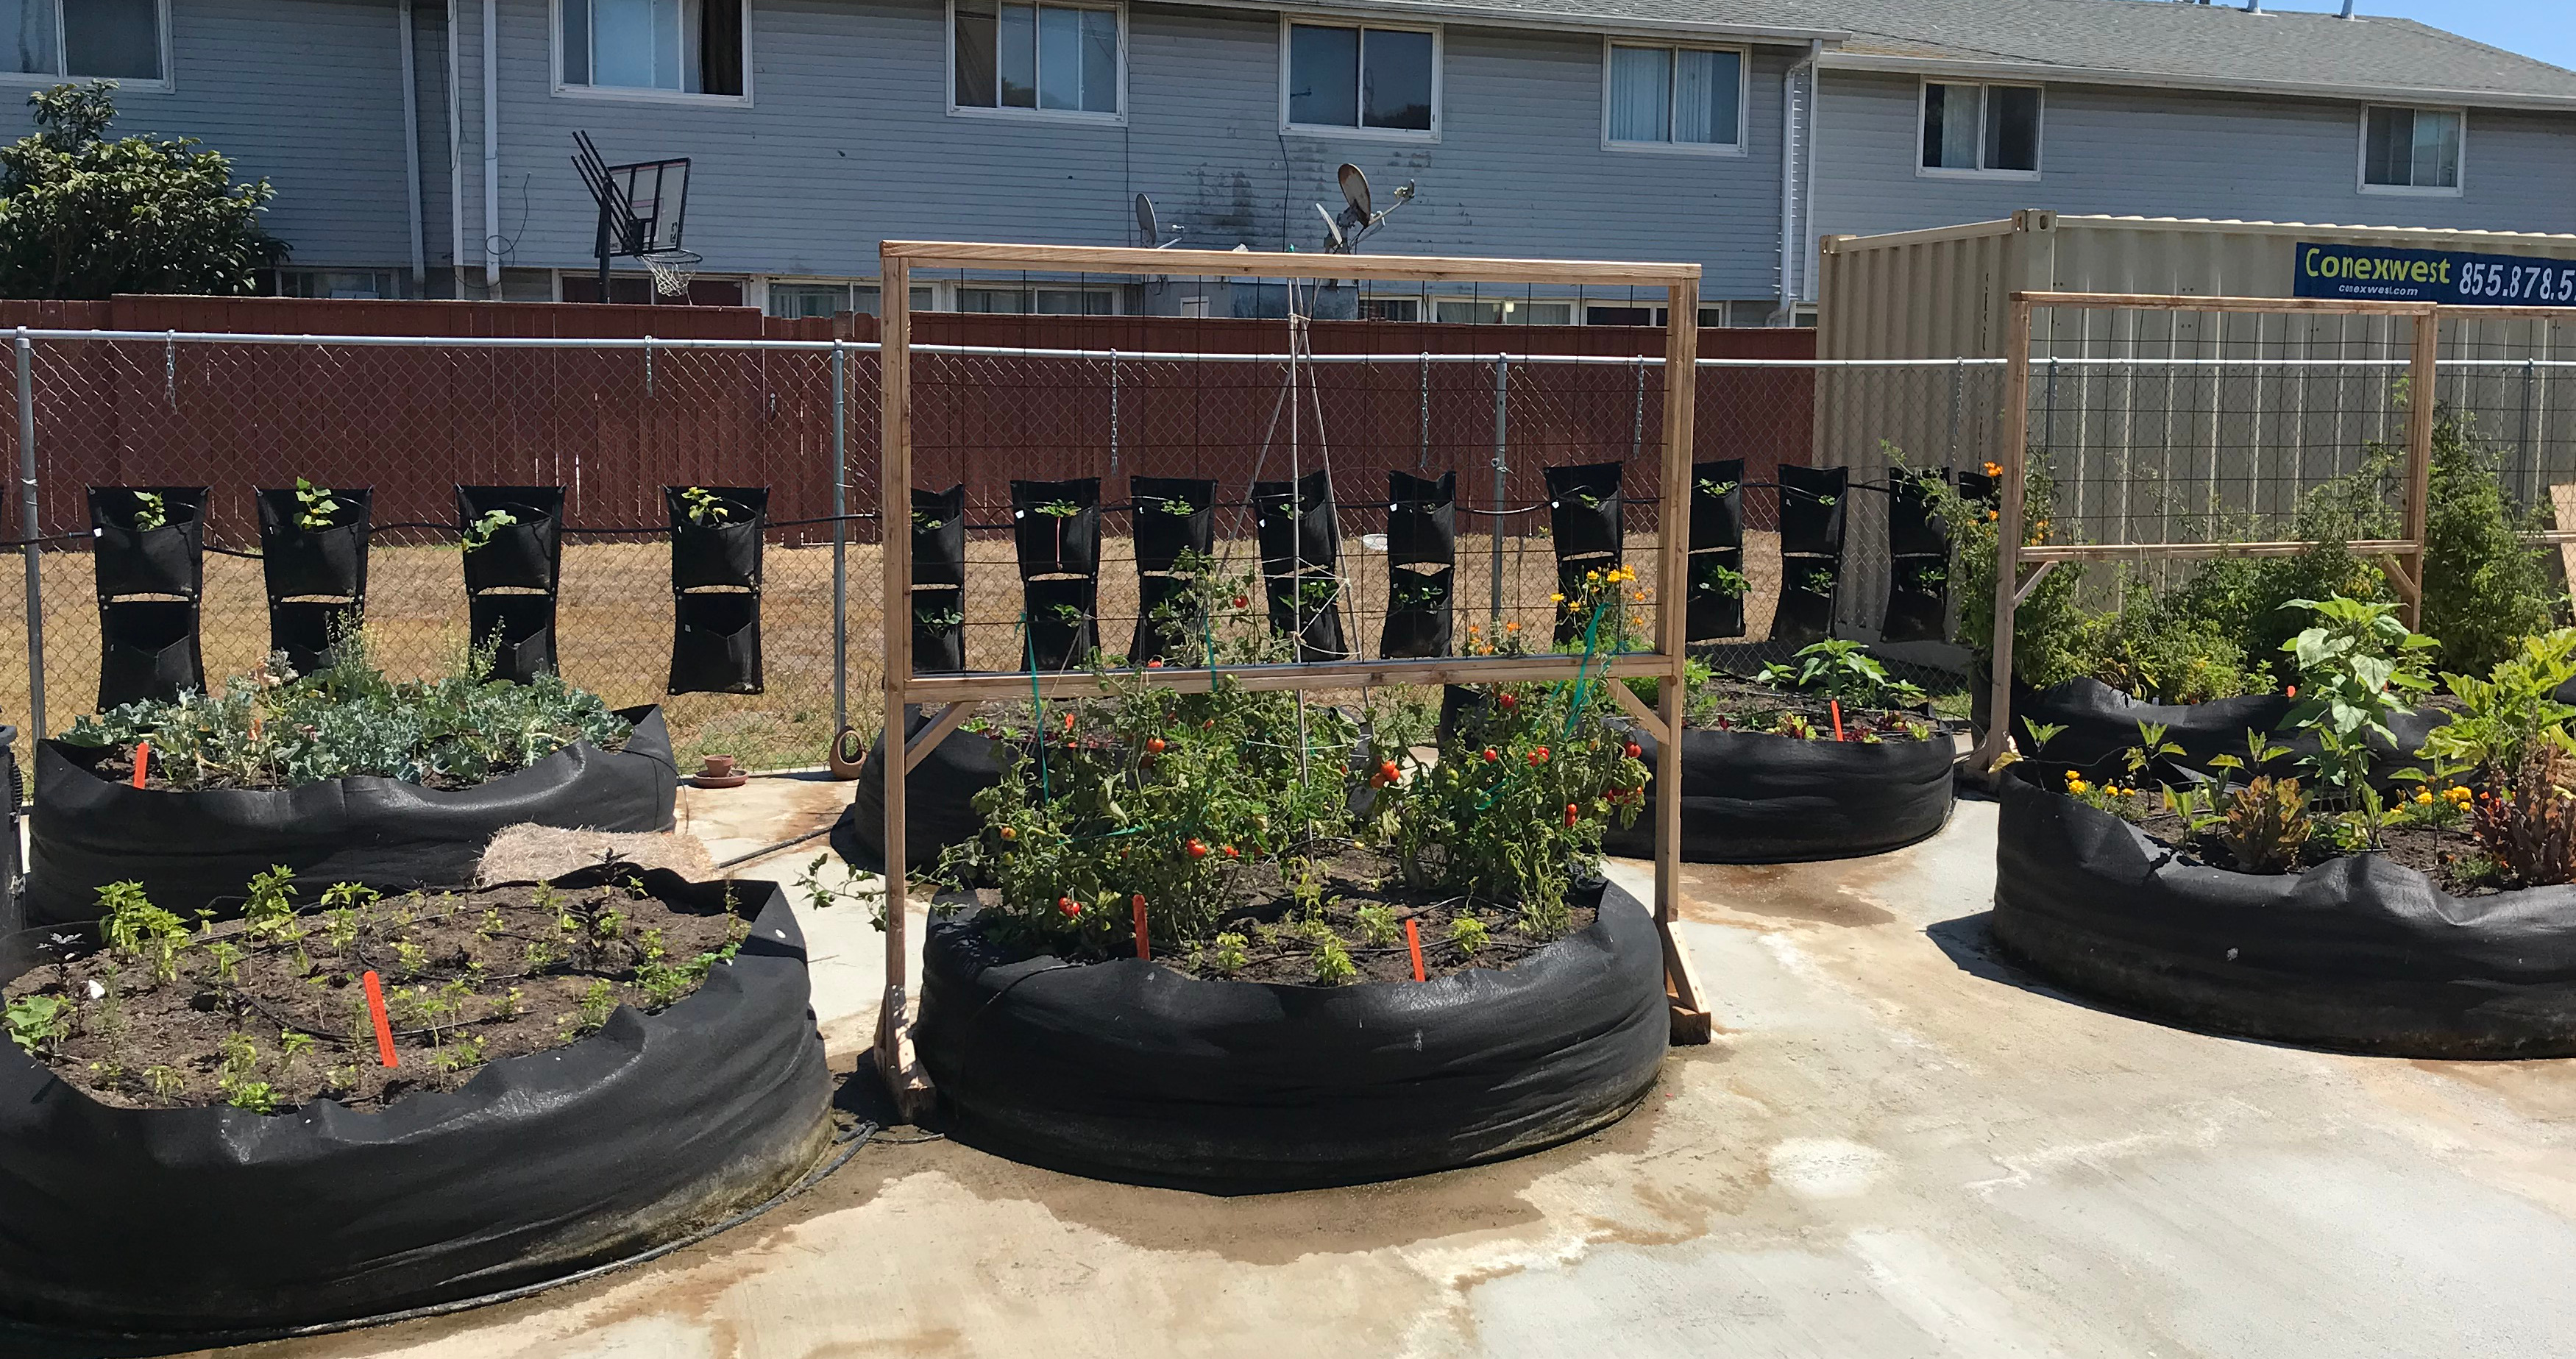 Image of Treasure Island Community Garden planter beds